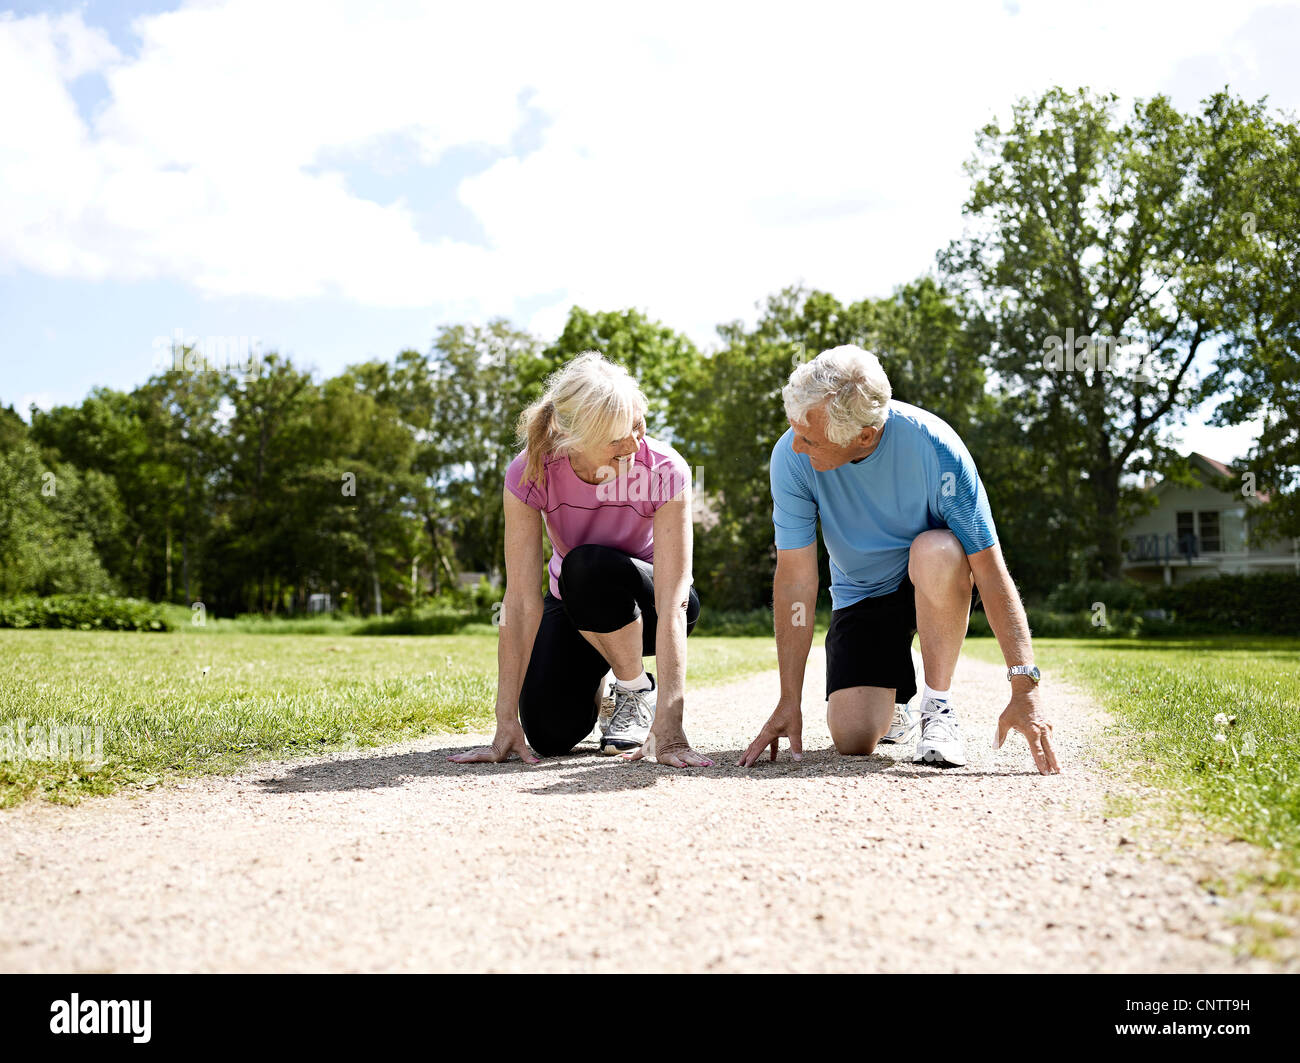 Older couple crouched in start position - Stock Image